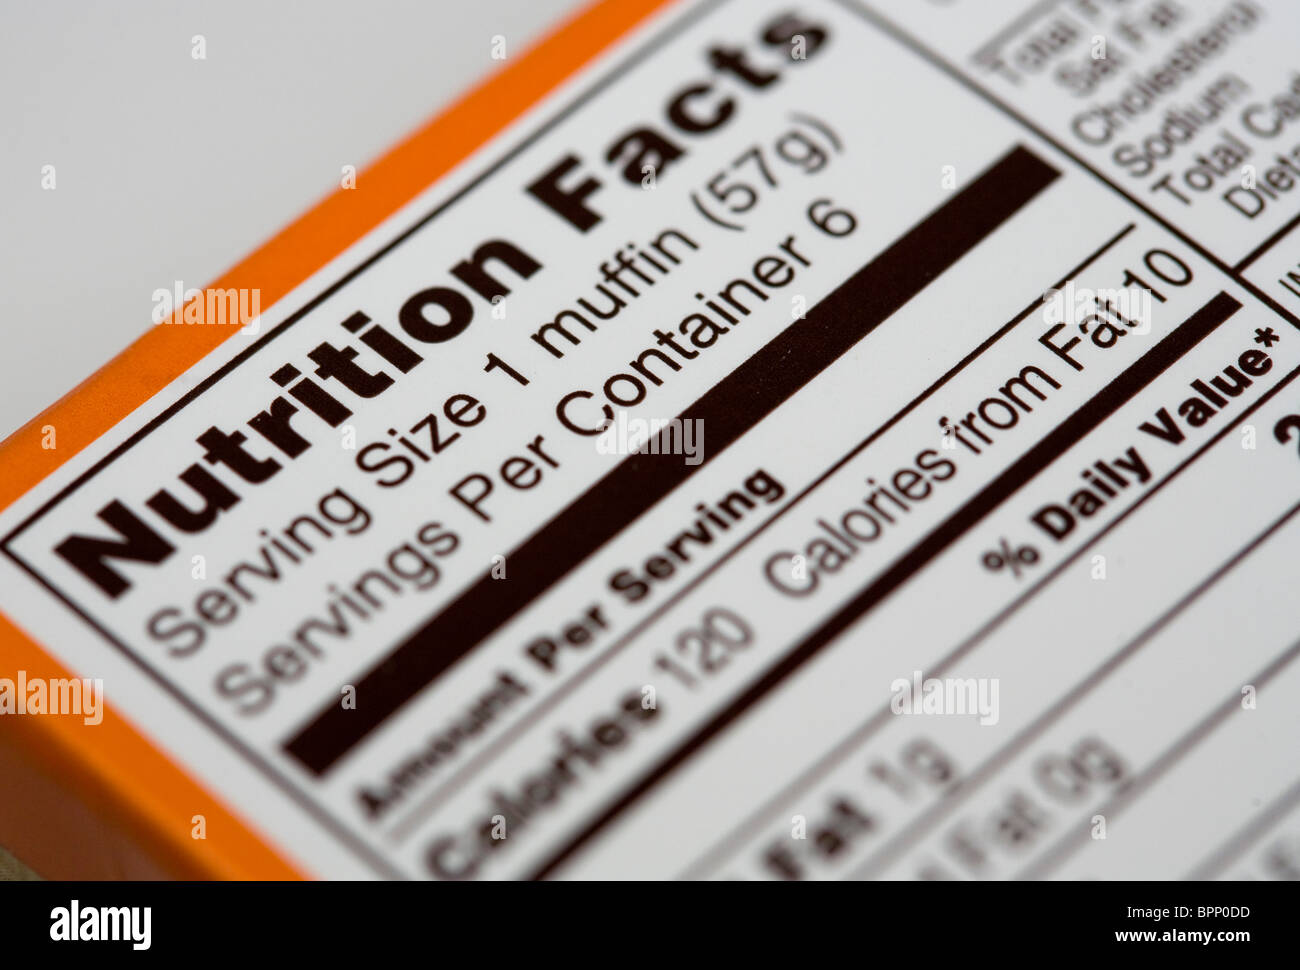 A United States food nutrition facts chart. - Stock Image